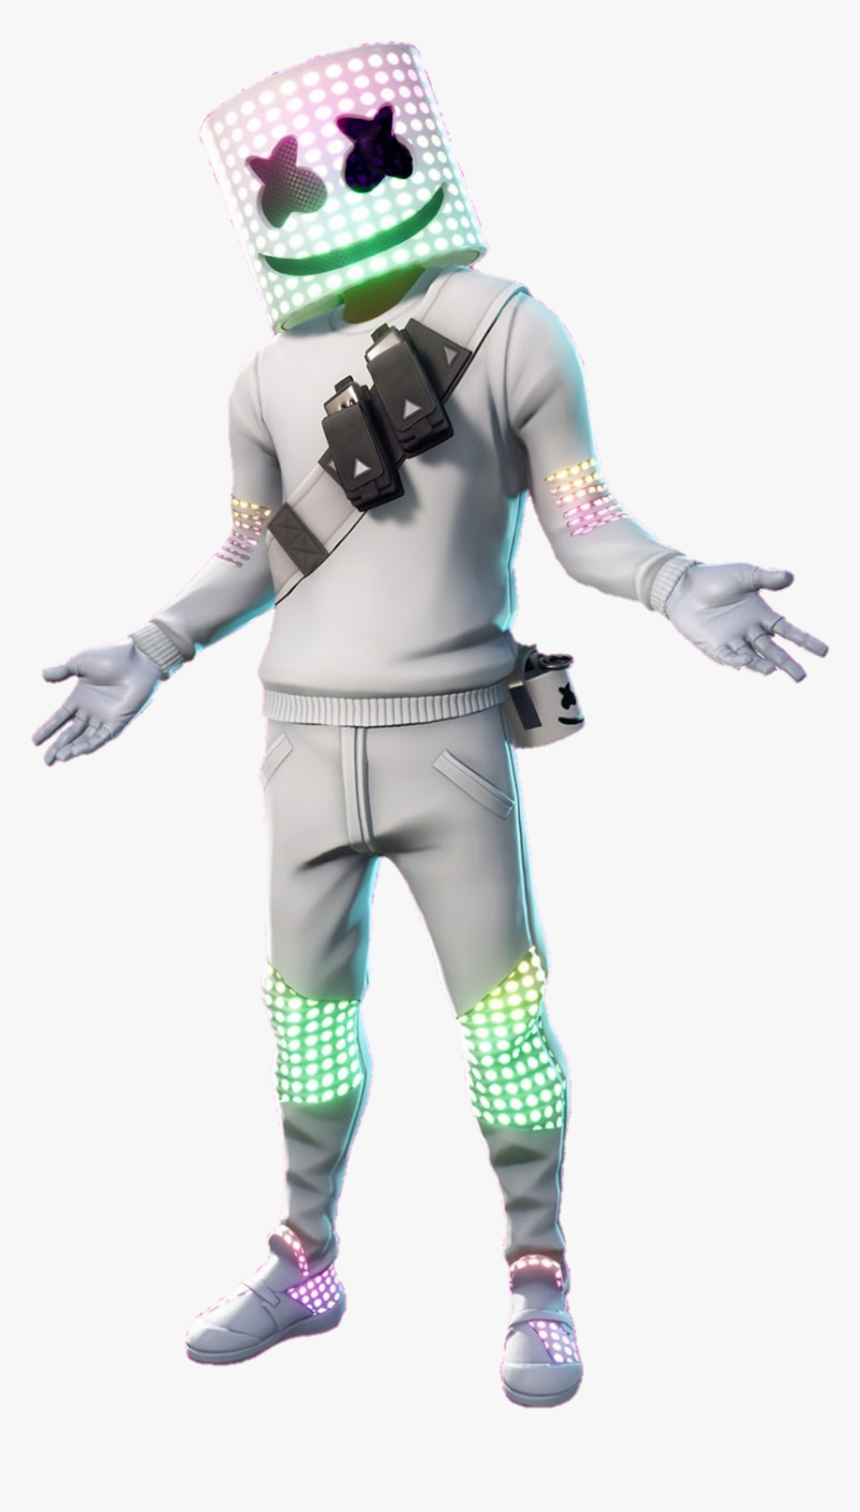 Marshmello Fortnite Png, Transparent Png, Free Download